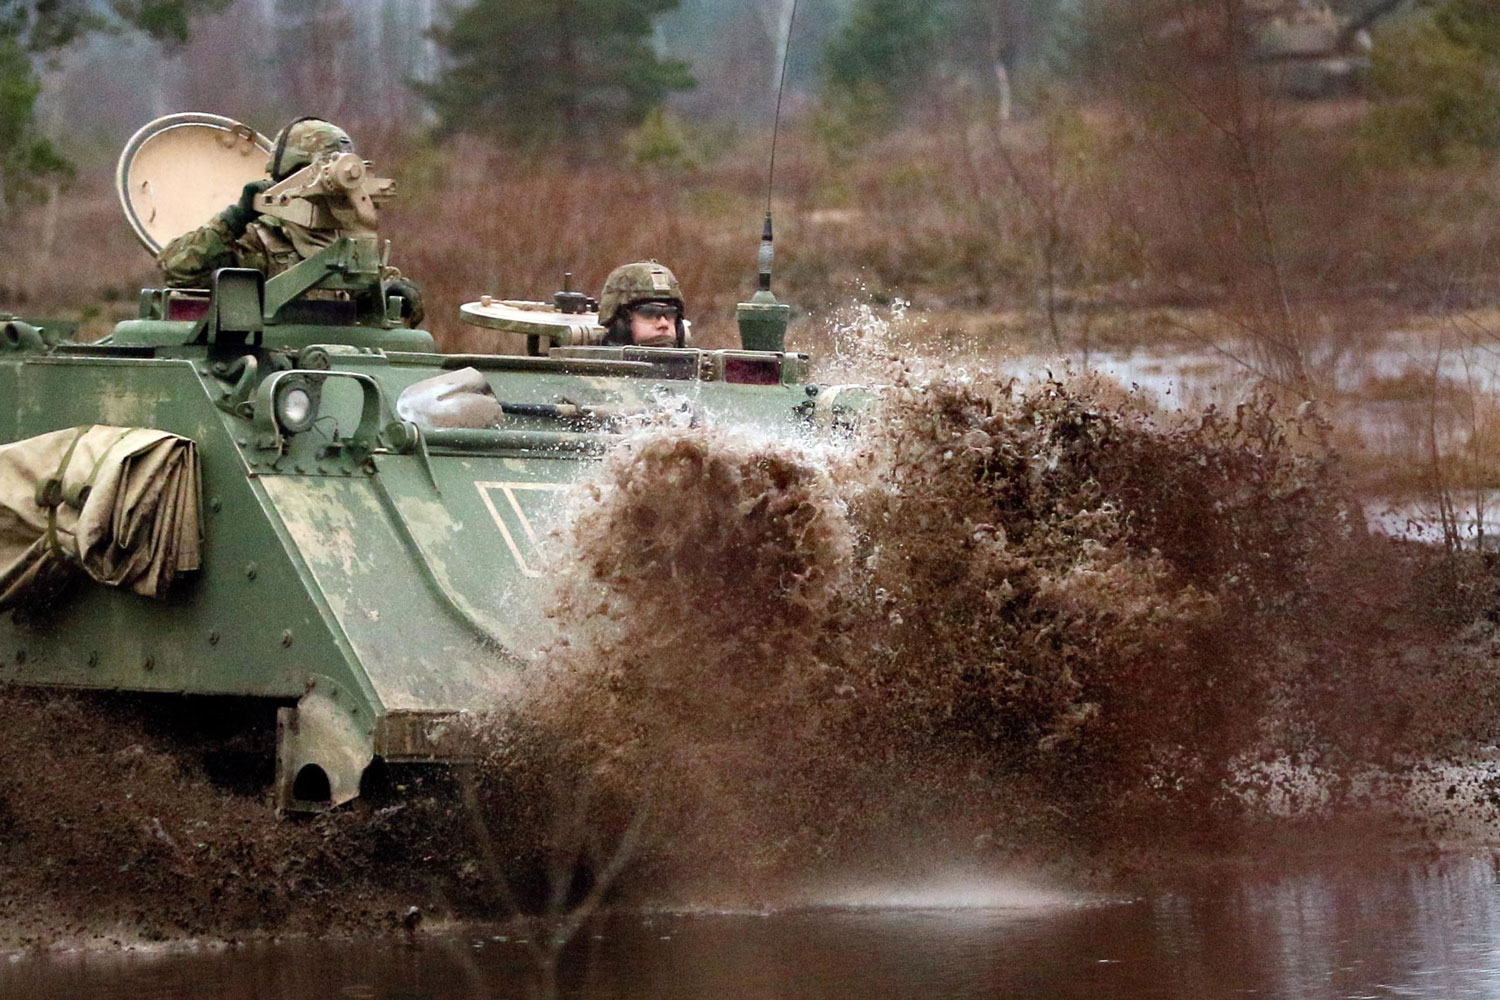 Soldiers assigned to 5th Squadron, 4th Cavalry Regiment, 2nd Armored Brigade Combat Team, 1st Infantry Division ford water during training in Adazi, Latvia.